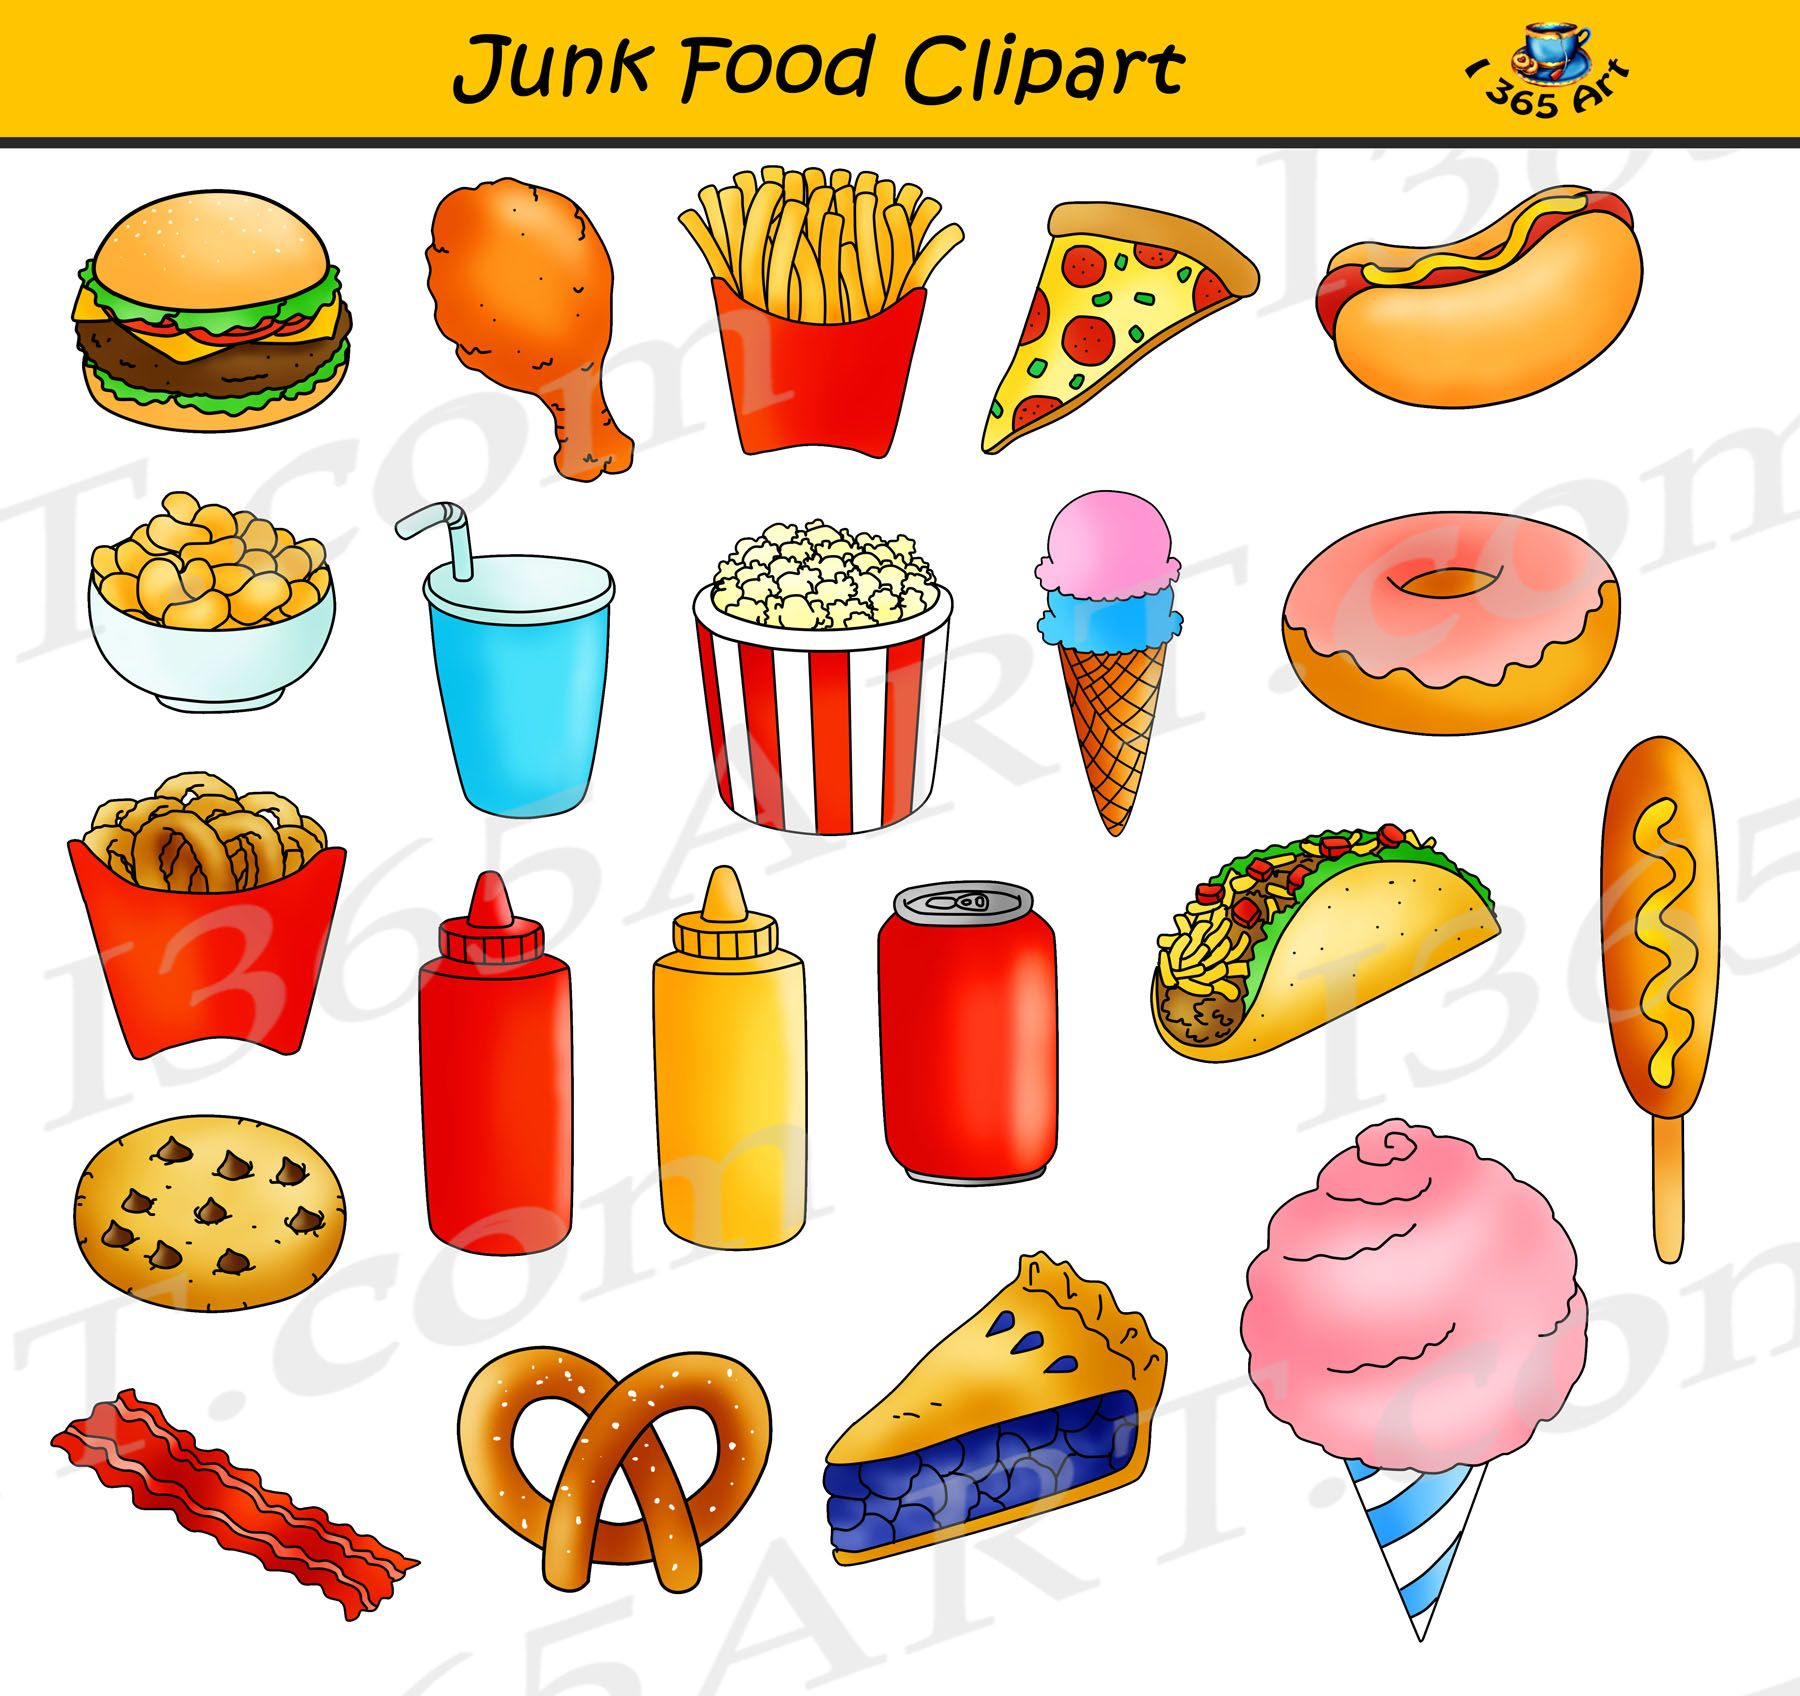 No more junk food clipart in spanish clipart freeuse library Junk Food Clipart, Fast Food Graphics Commercial Use ... clipart freeuse library